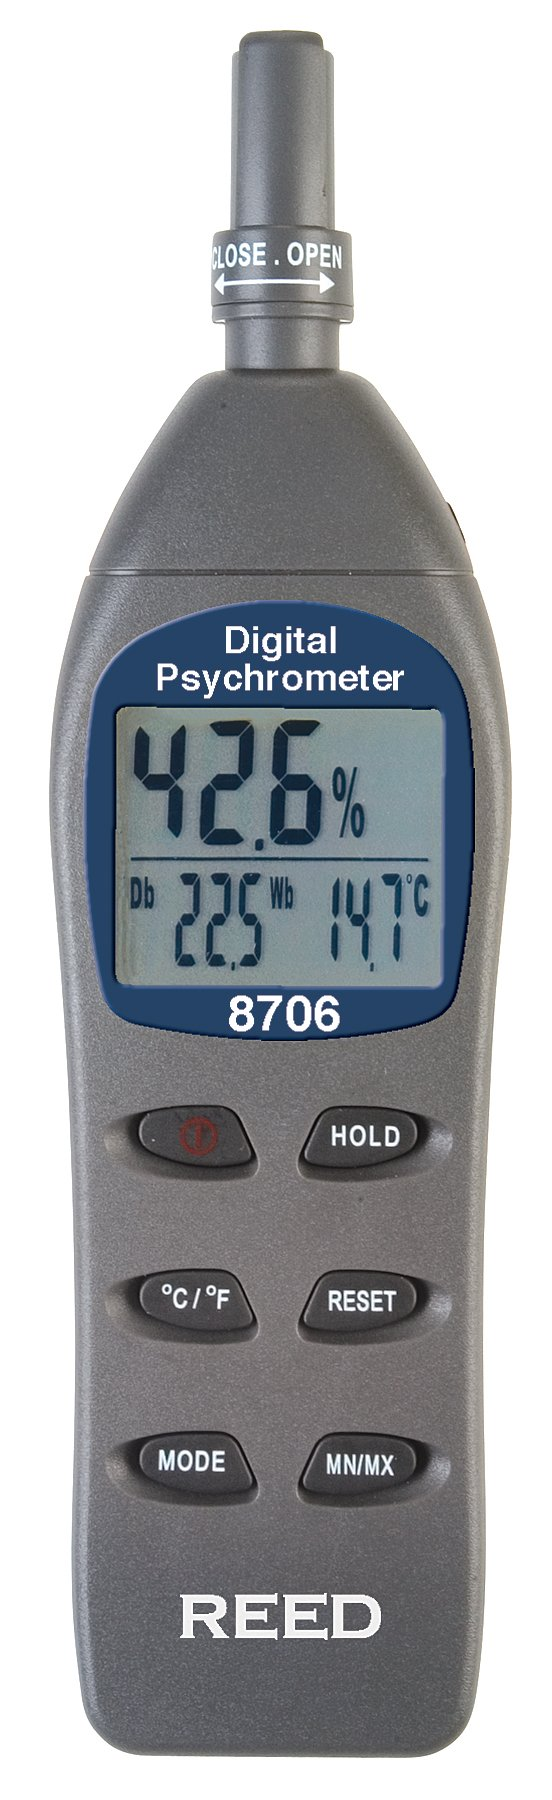 REED Instruments 8706 Digital Psychrometer / Thermo-Hygrometer, (Wet Bulb, Dew Point, Temperature, Humidity) with Calibration Certificate